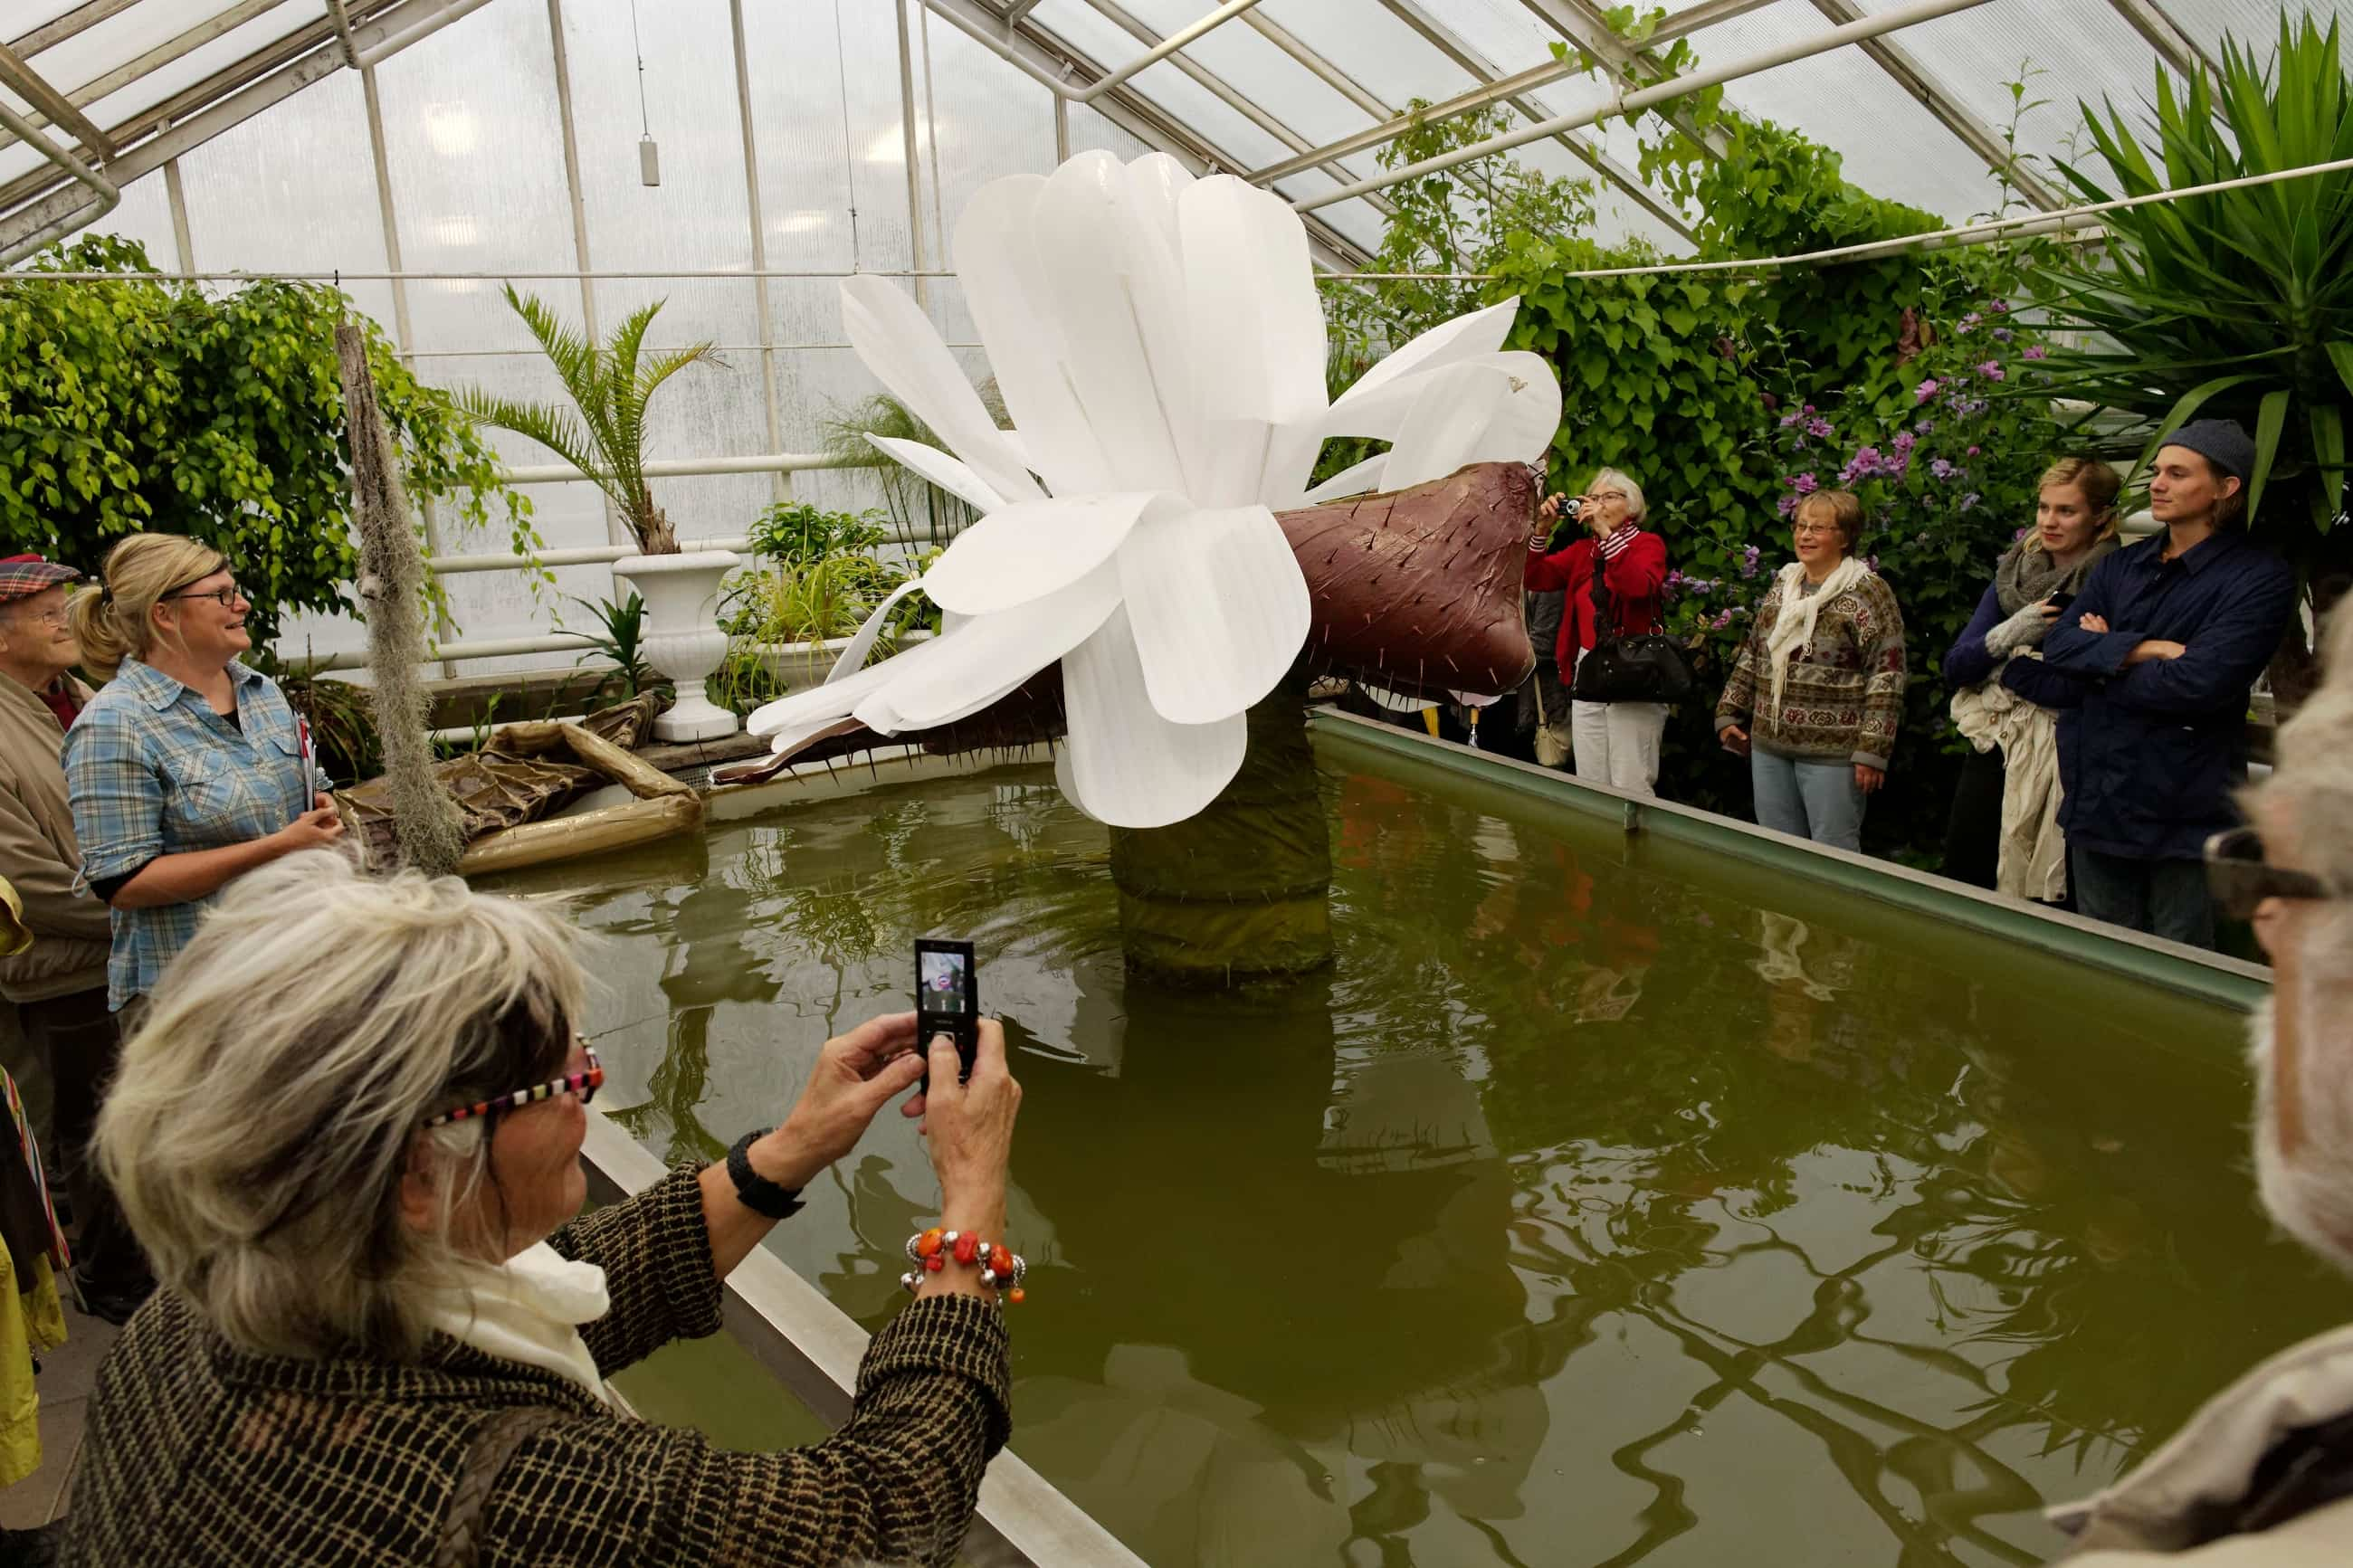 ngela Ihrman, The Giant Water Lily Victoria amazonica BLOOMS, 2012, Documentation of a 2-night performance with waterlily costume, female host, pineapple fragrance